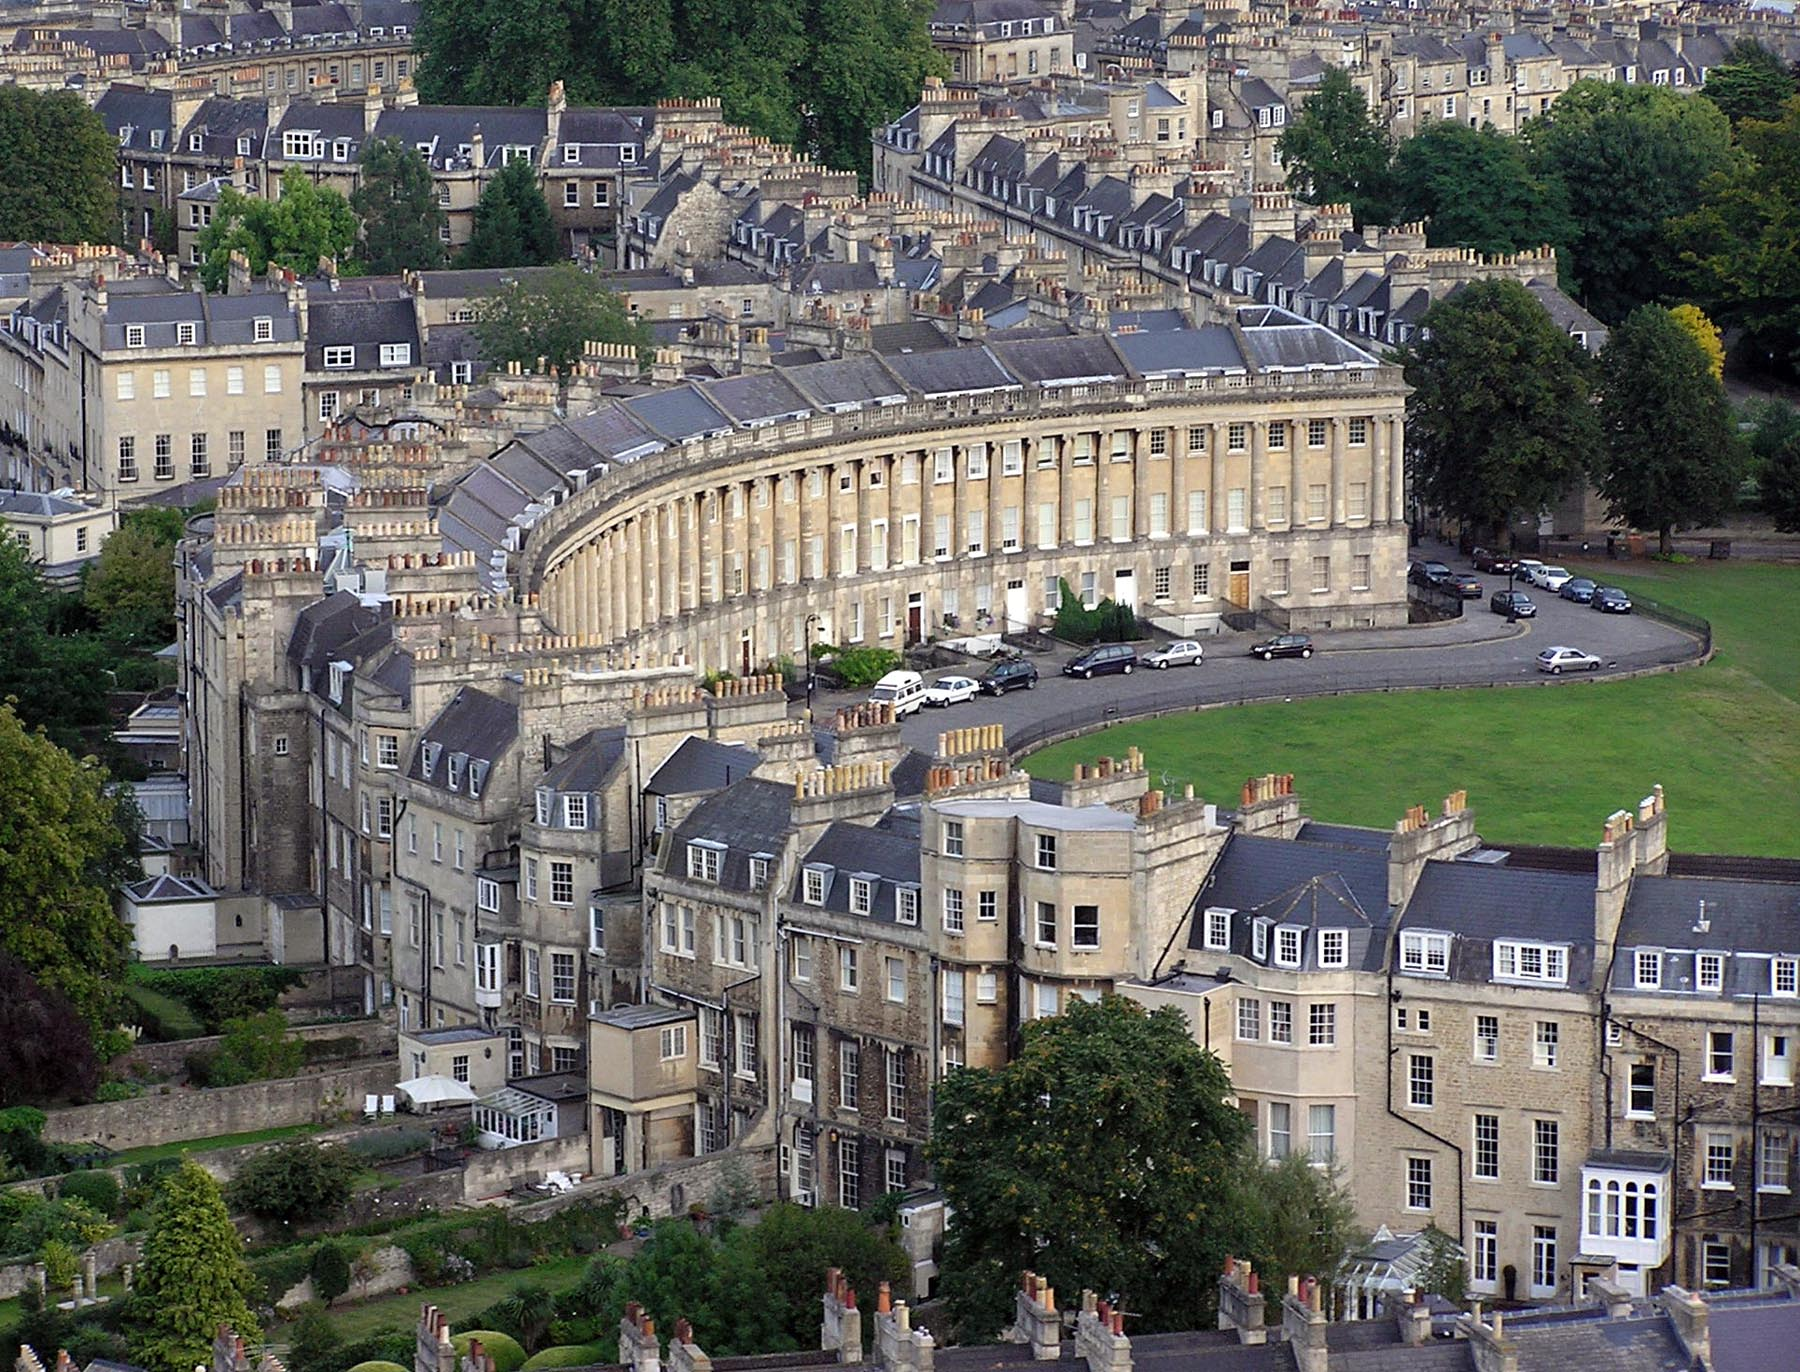 From http://en.wikipedia.org/wiki/Bath,_Somerset